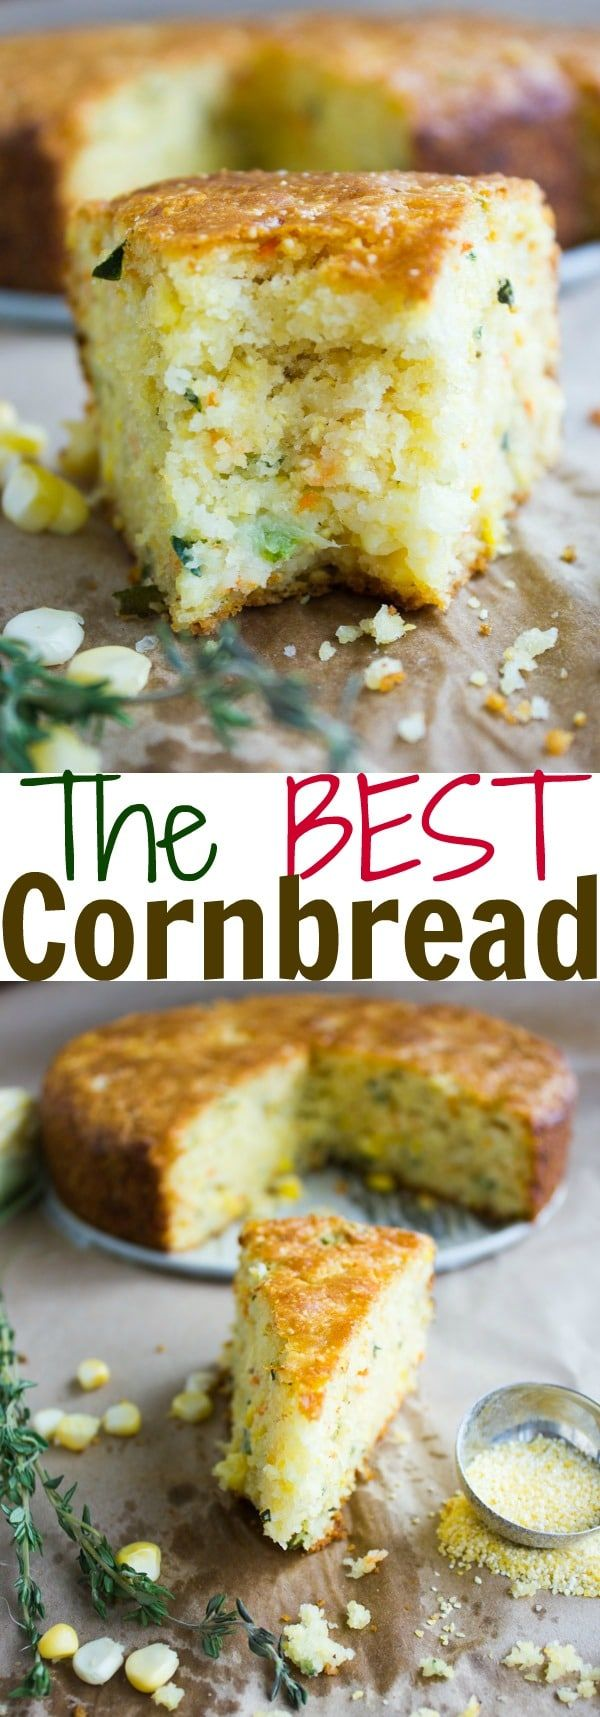 Cheddar Zucchini Cornbread - the best Cornbread Recipe